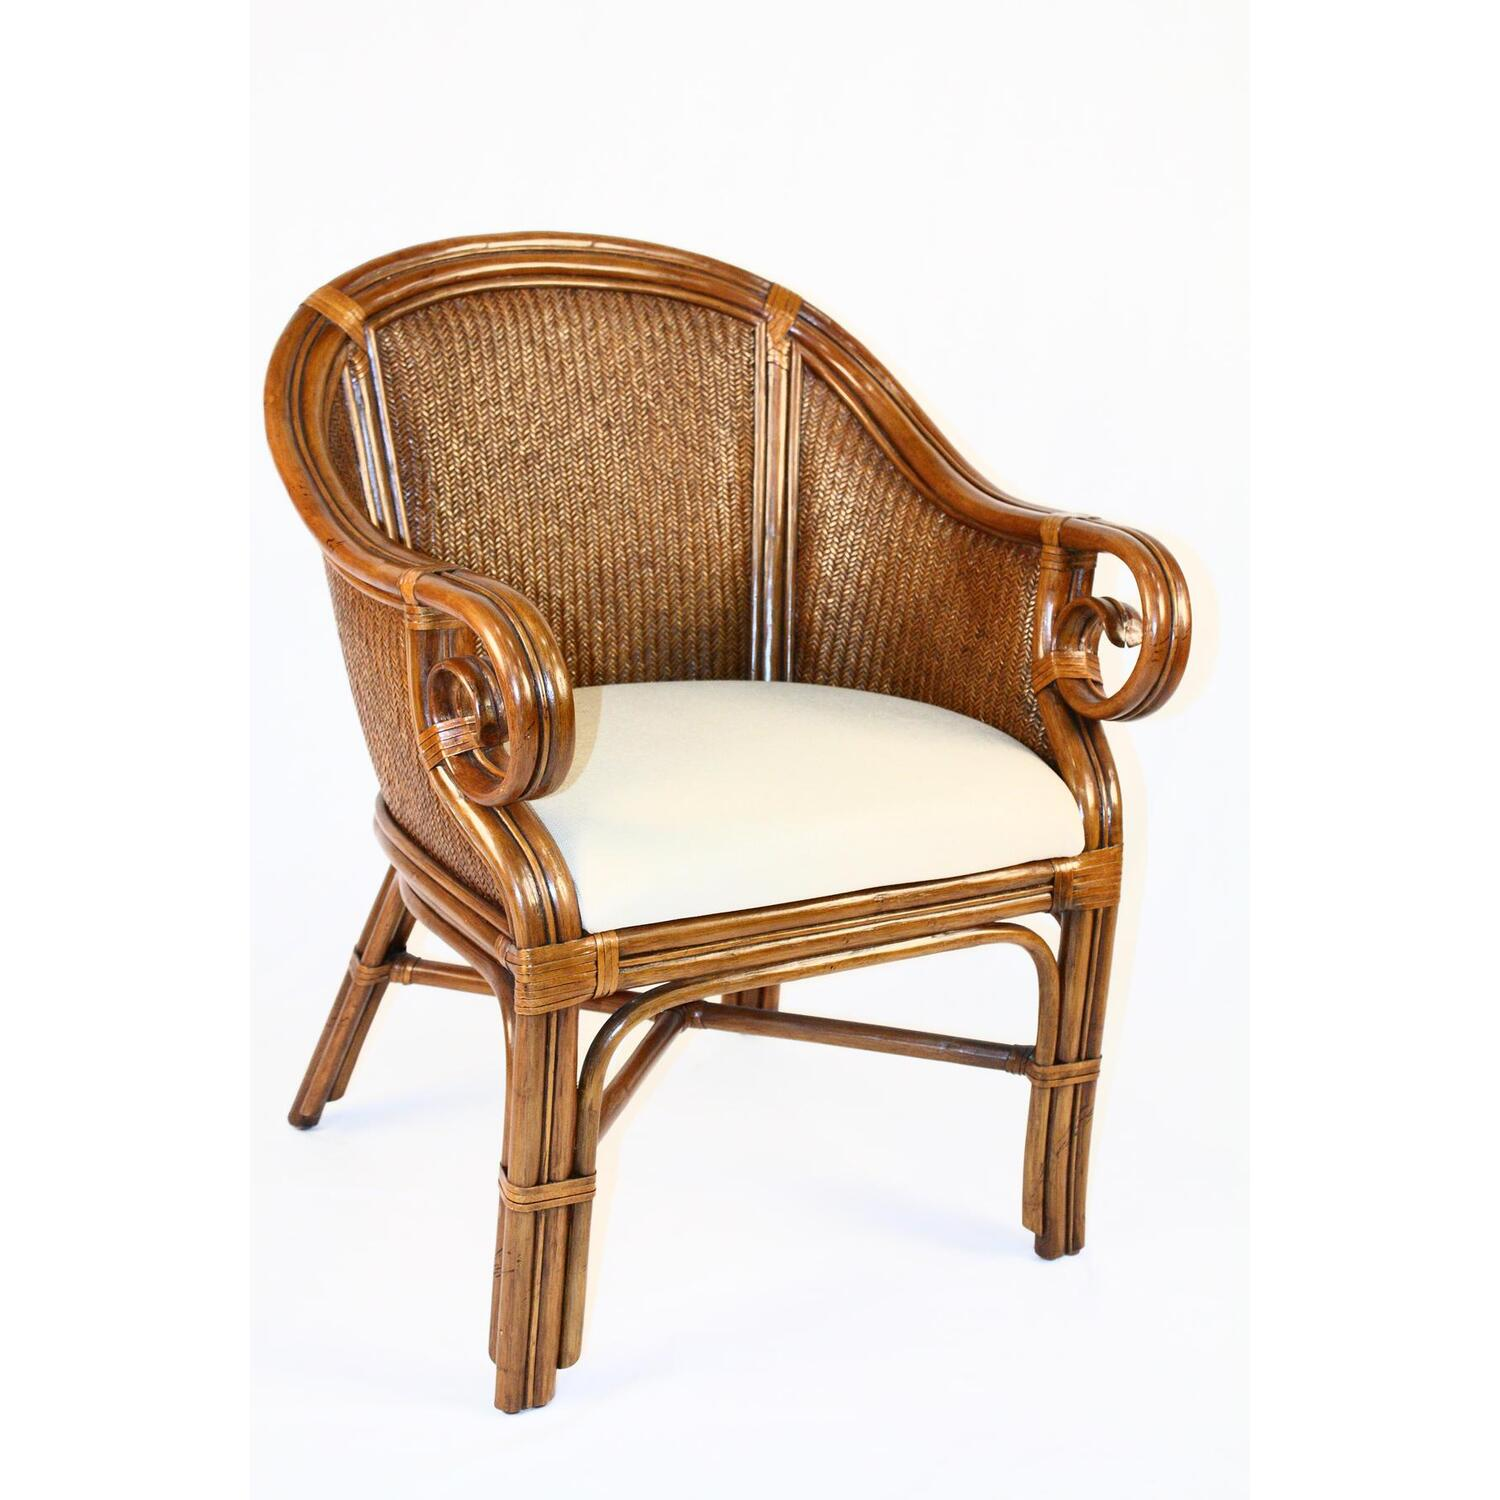 Indoor Rattan Amp Wicker Club Chair Ojcommerce